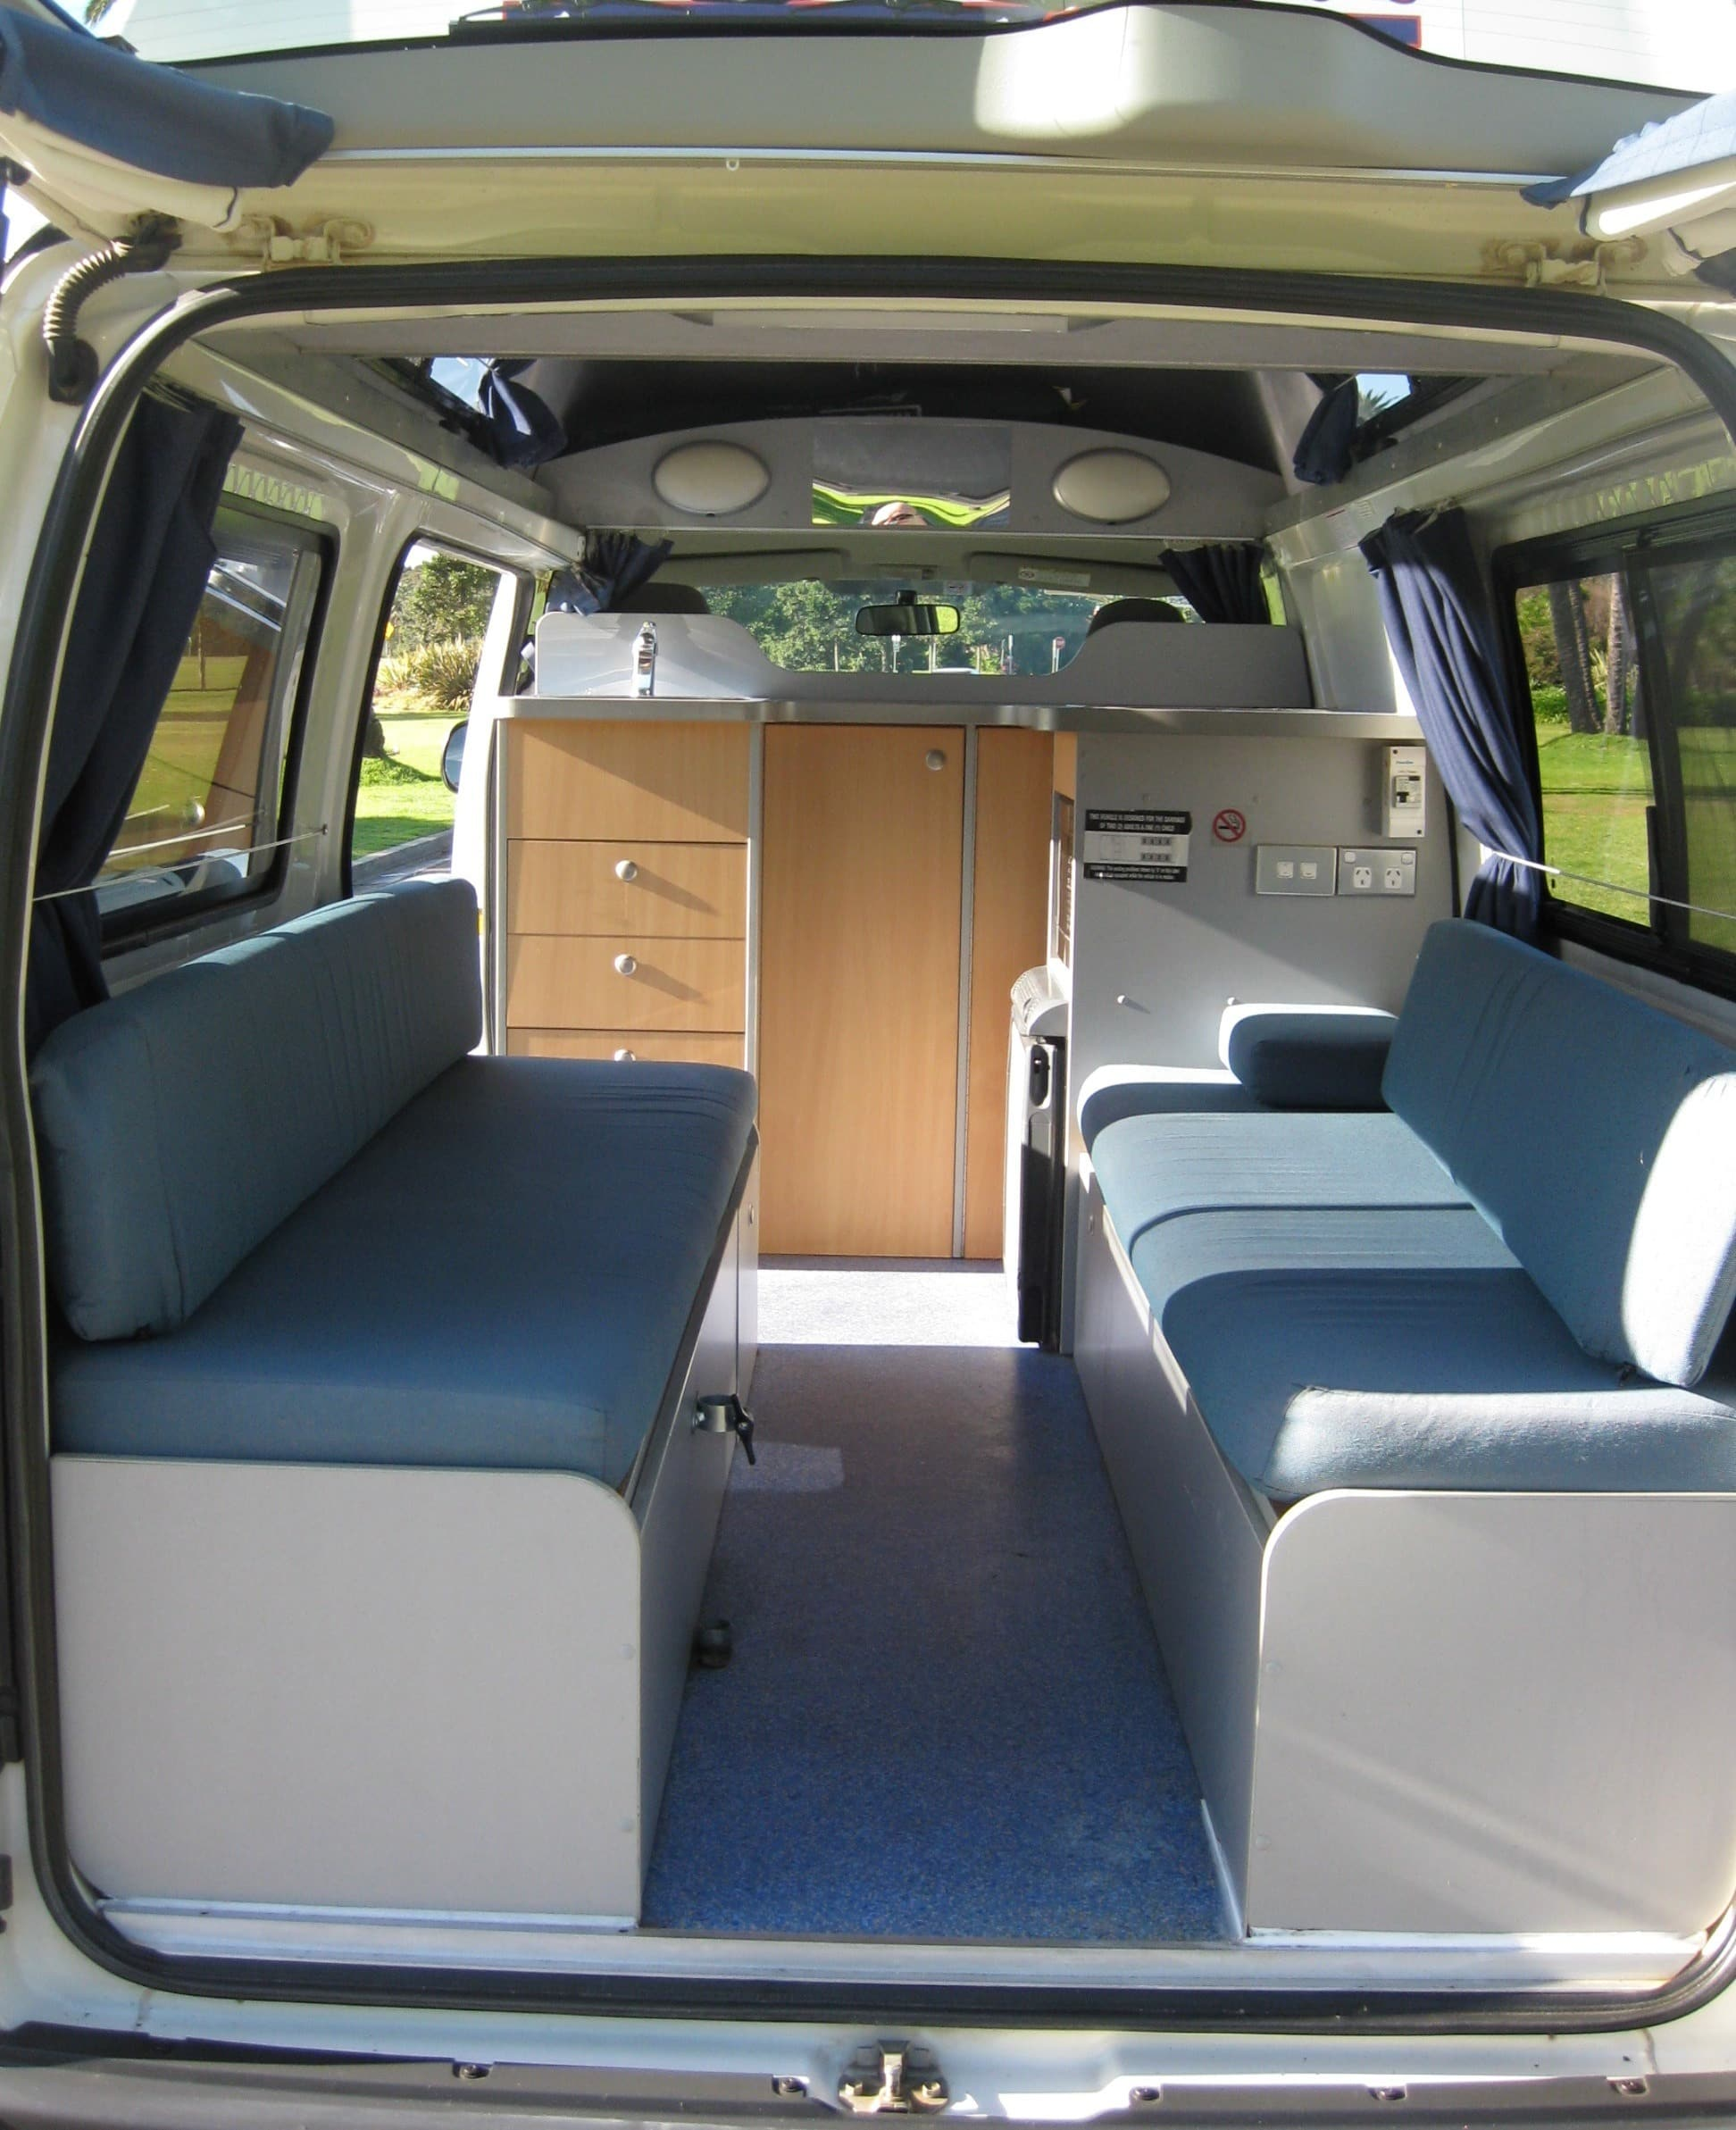 Used Toyota Campers For Sale: Travellers Autobarn EN